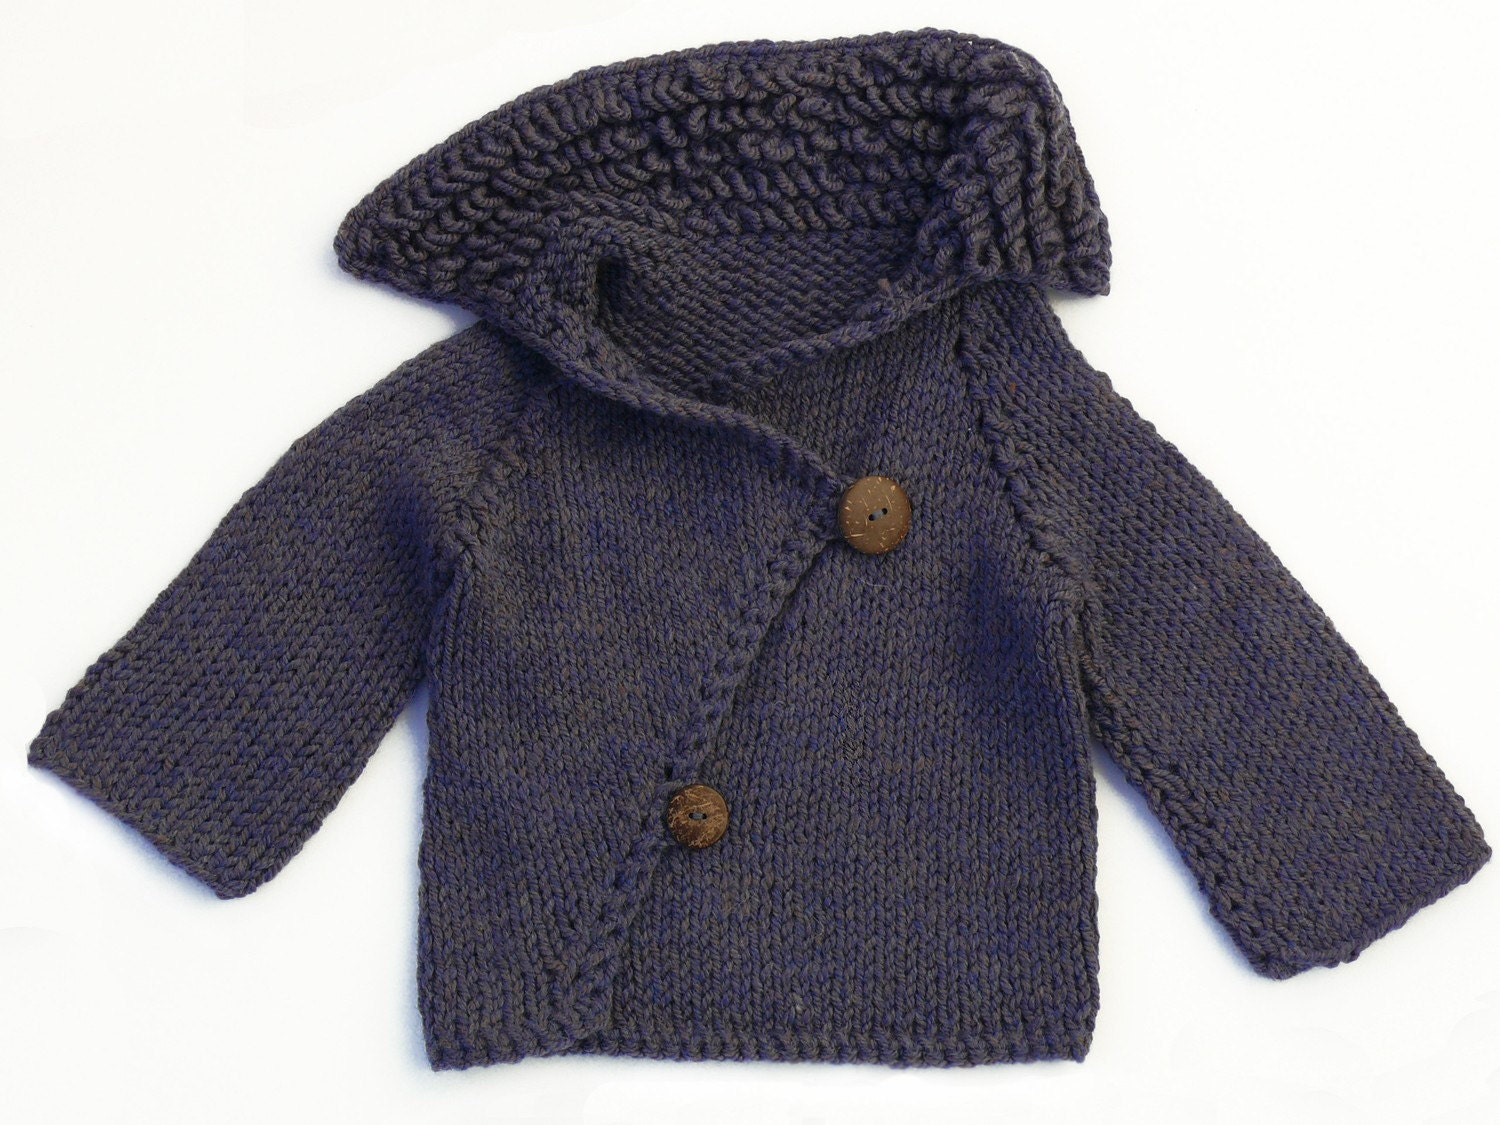 Unusual Knitting Patterns For Toddlers : Unique design unisex baby sweater